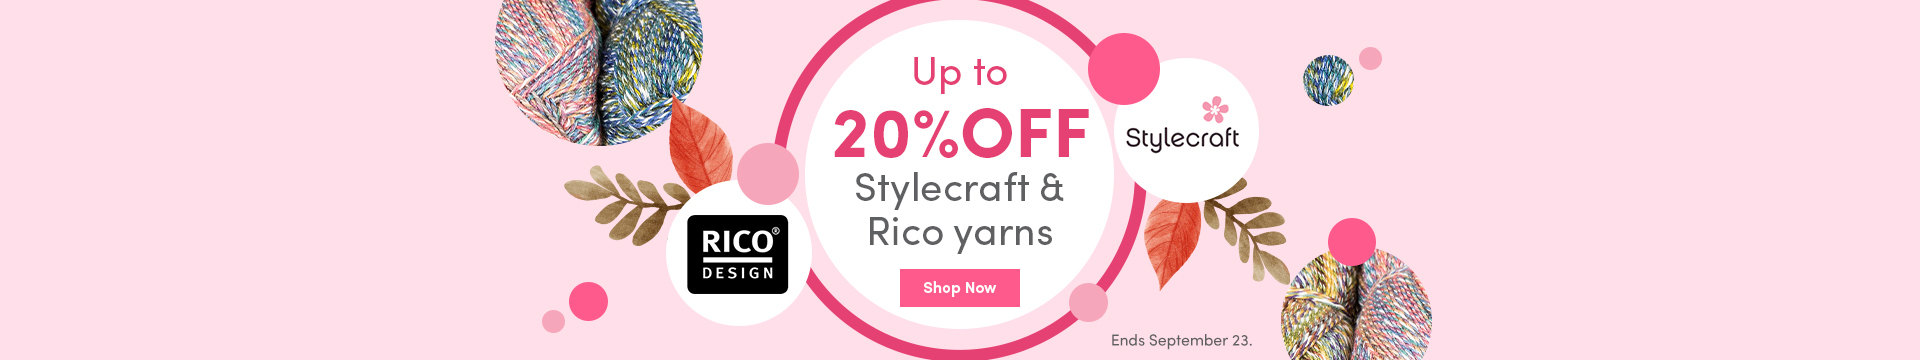 LC Marketing - Up to 20% off Stylecraft & Rico